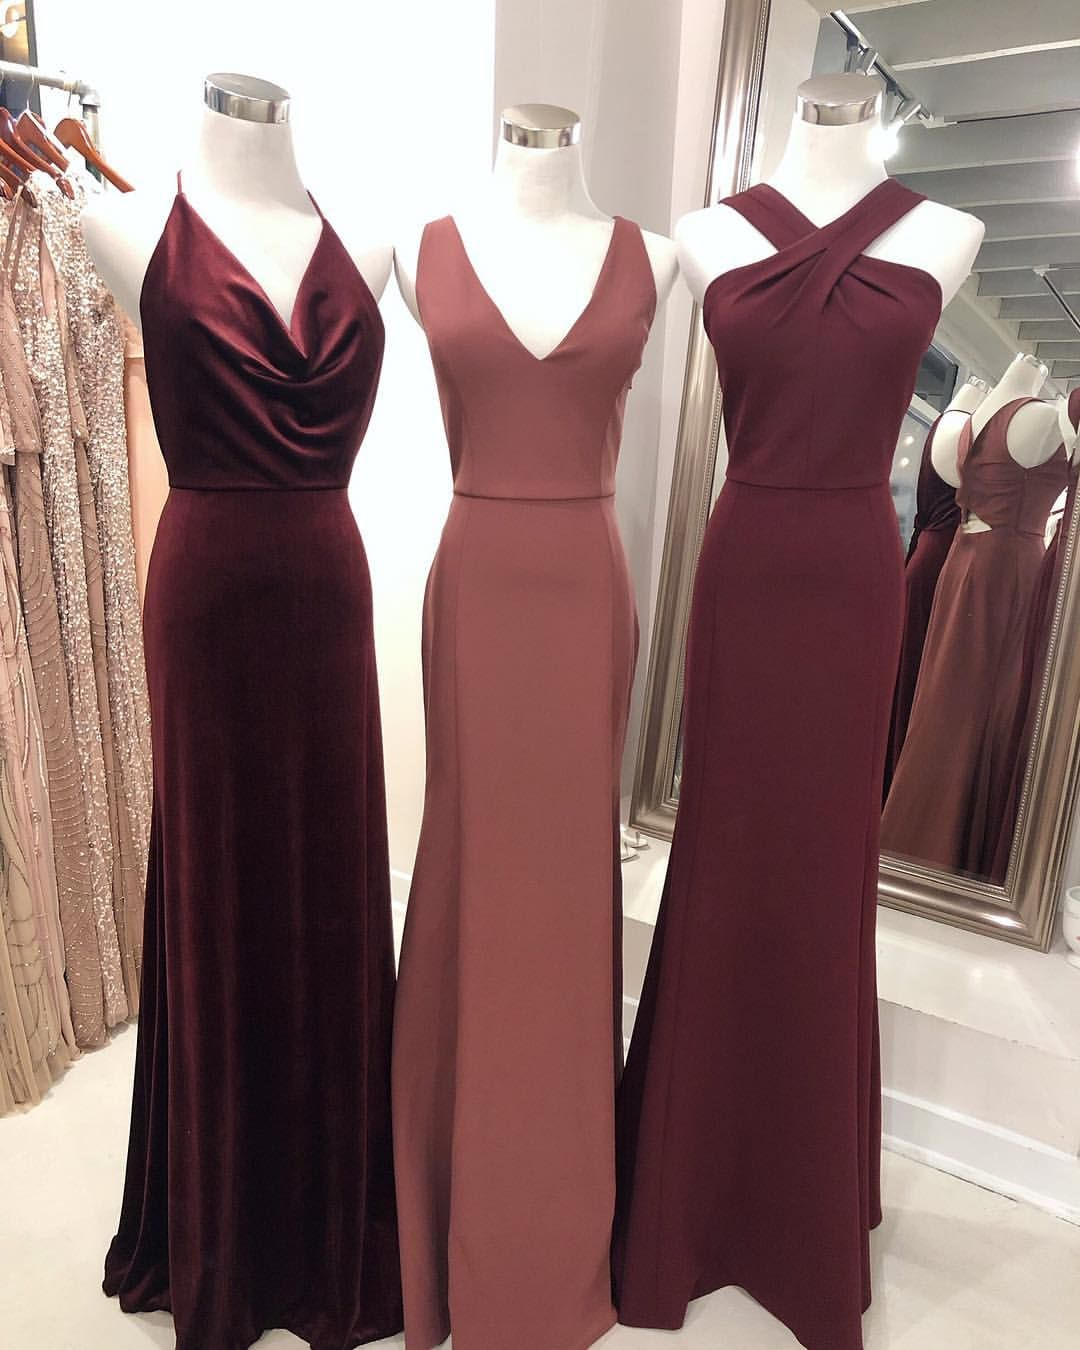 Dark Berry Cinnamon Rose And Hibiscus Perfect Palette Pals Or The Notes In O Long Bridesmaid Dresses Fall Bridesmaid Dresses Mermaid Long Bridesmaid Dresses